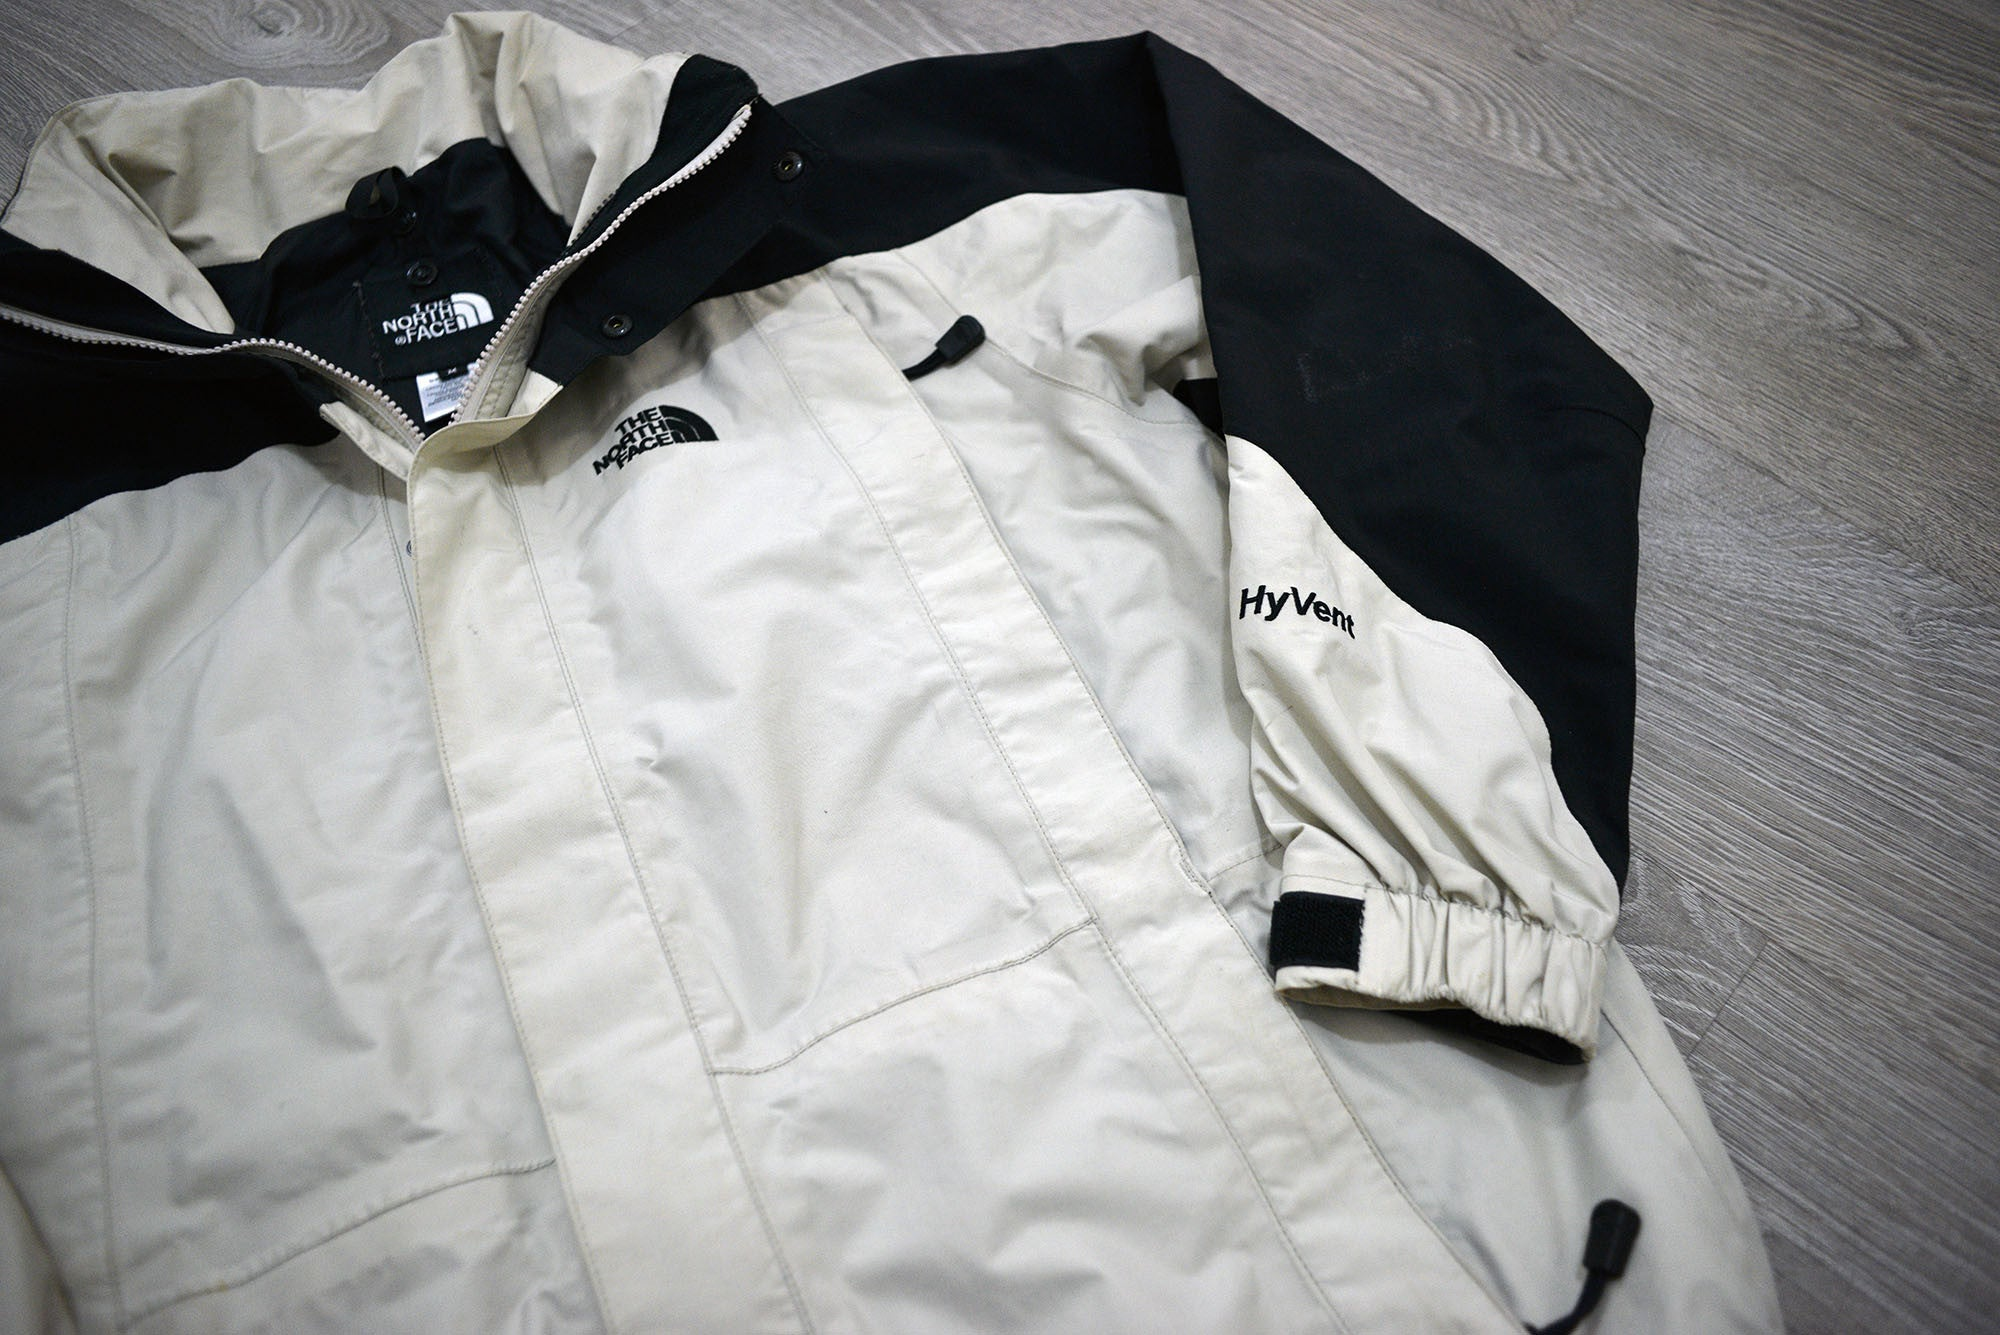 Vintage North Face Hyvent Goretex Mountain Jacket - White/Black